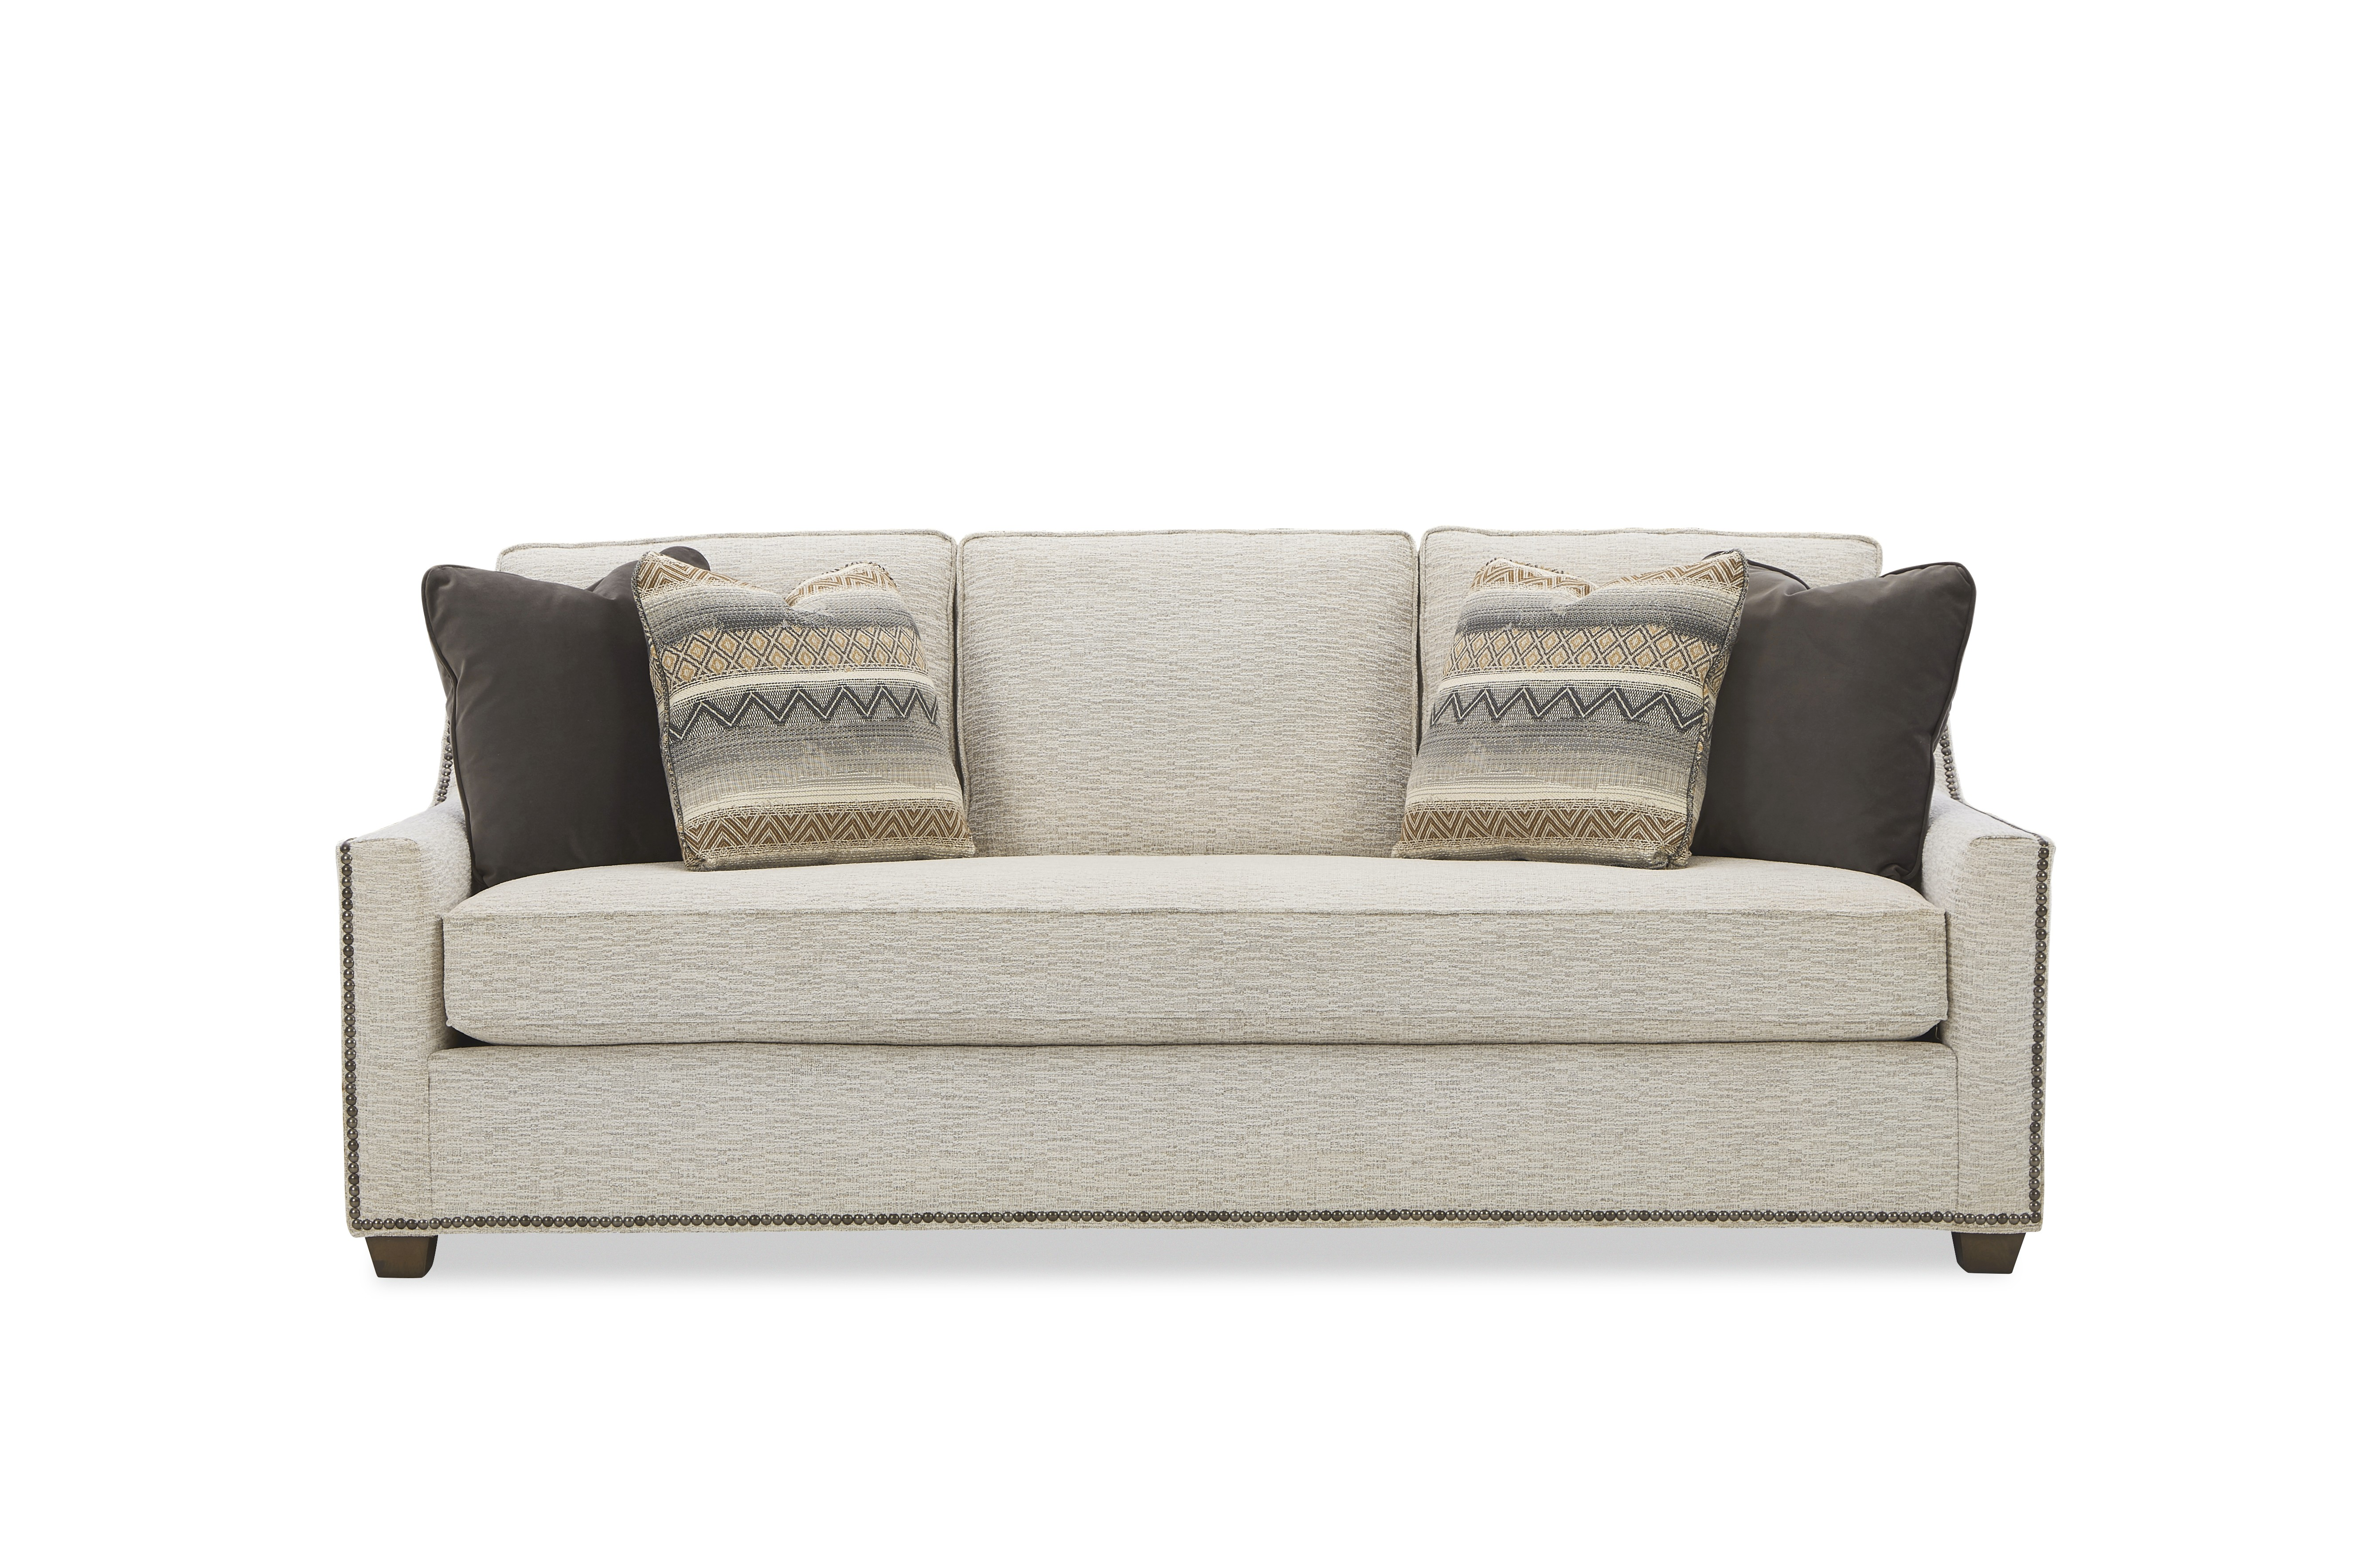 702950 Bench Sofa by Craftmaster at Esprit Decor Home Furnishings